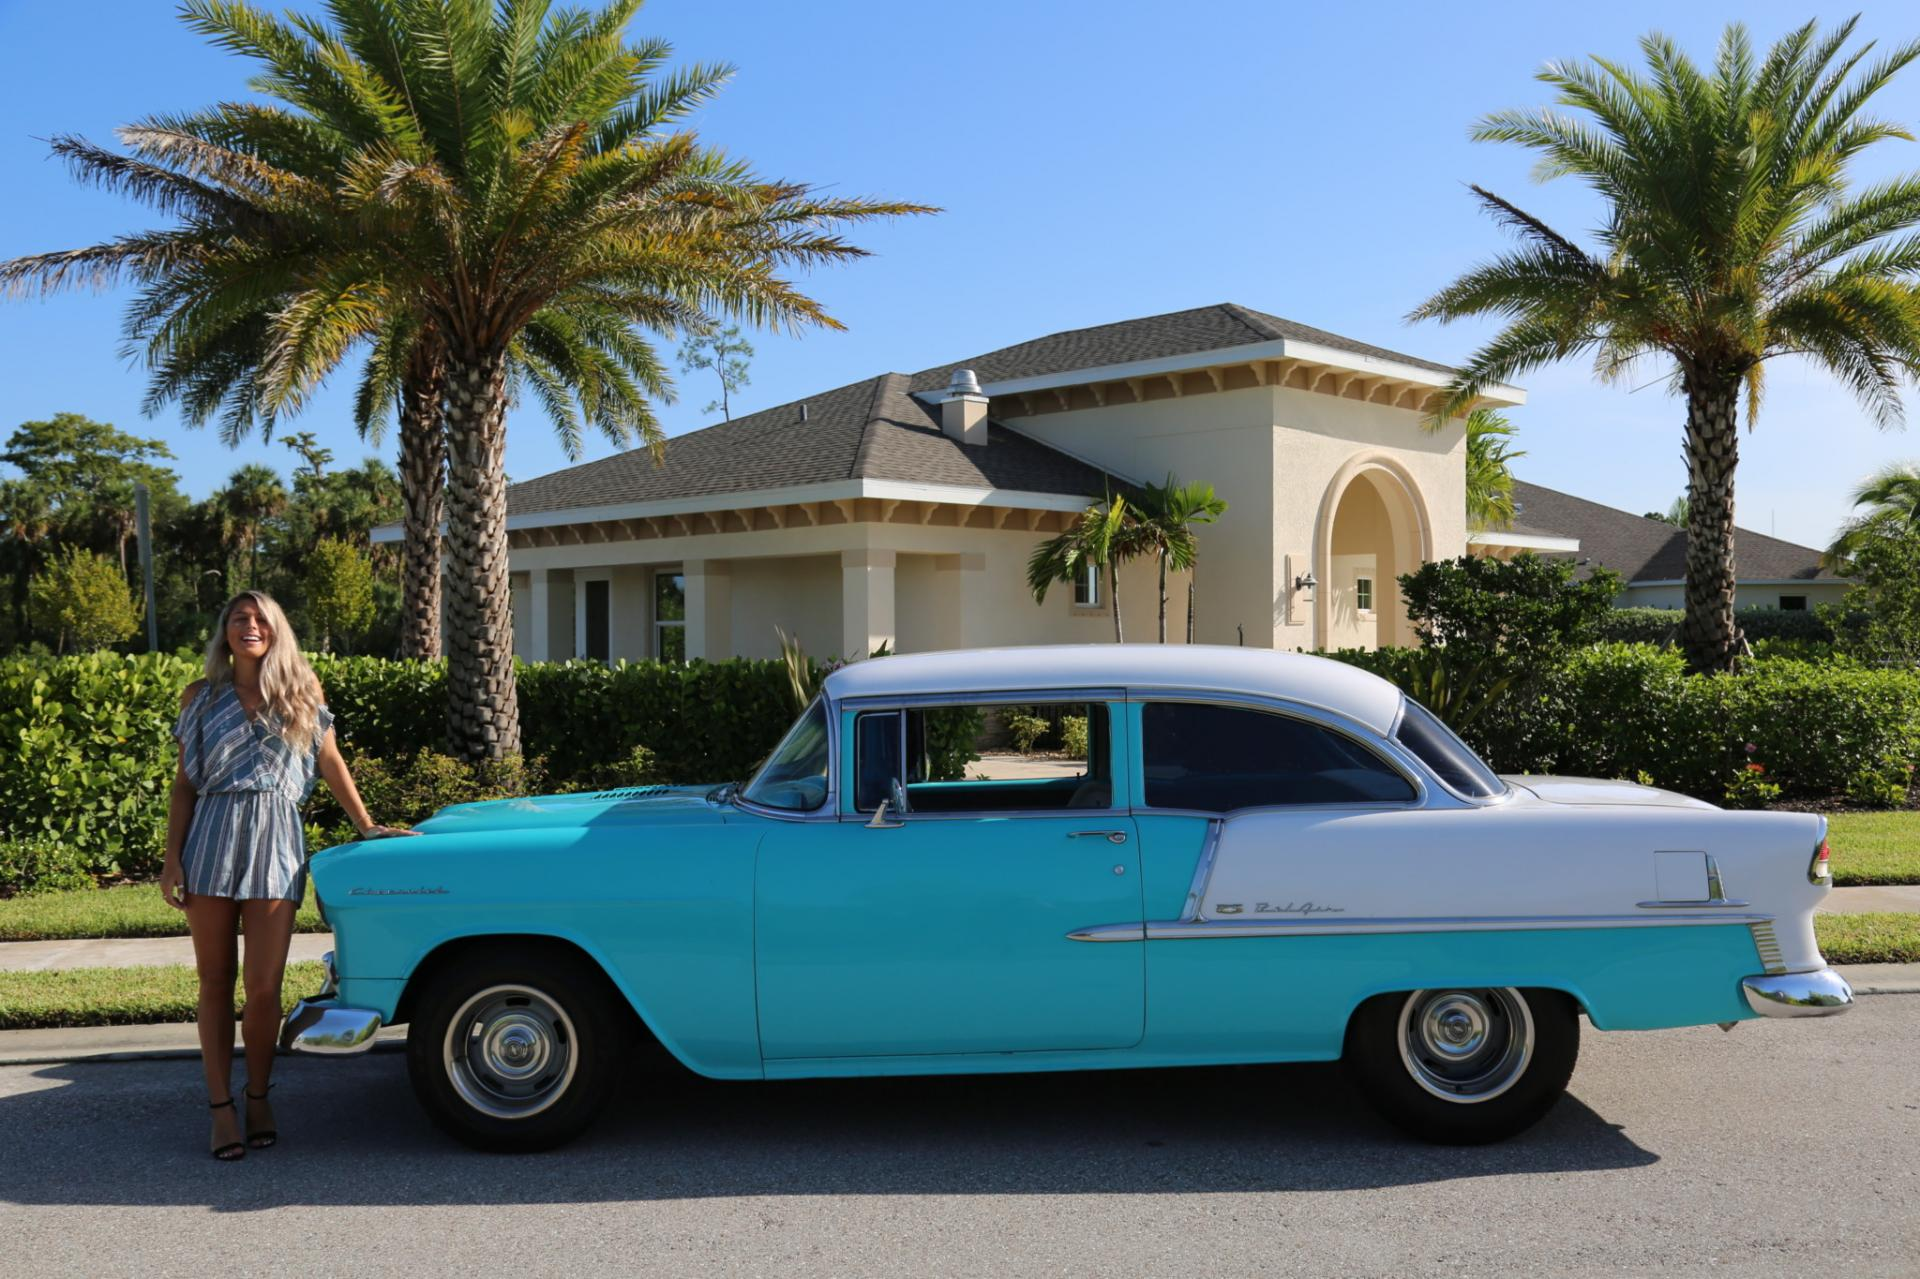 Used 1955 Chevrolet Bel Air for sale Sold at Muscle Cars for Sale Inc. in Fort Myers FL 33912 2